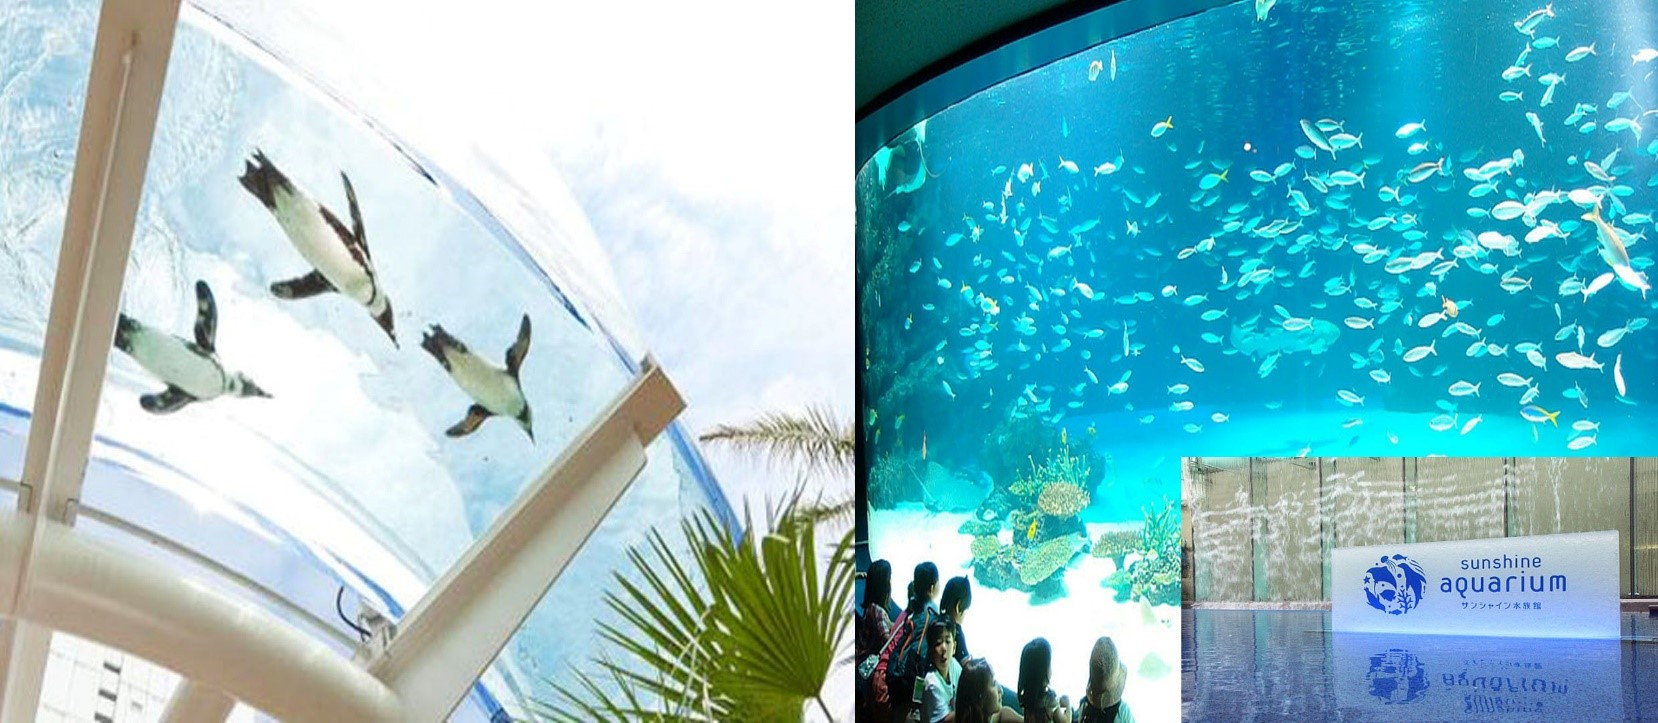 One Stop Transfer: Tokyo City to Sunshine Aquarium